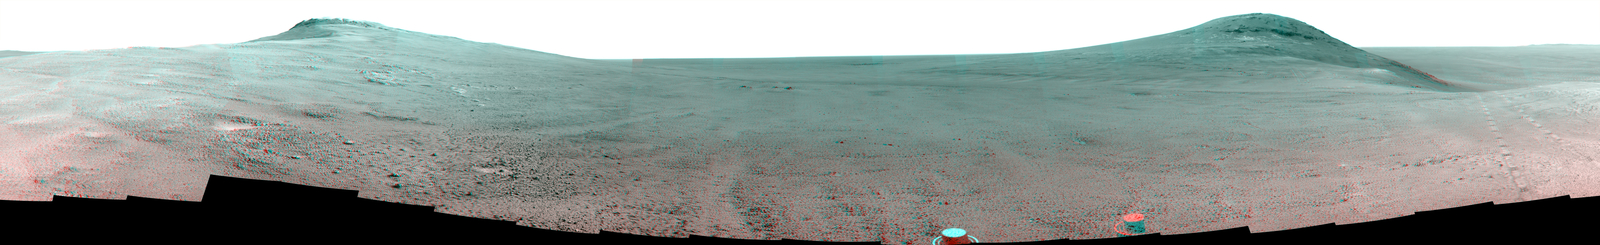 "This June 2017 stereo  view from NASA's Opportunity Mars rover shows the area just above  ""Perseverance Valley"" on the rim of a crater. It combines images from  the left eye and right eye of the rover's Pancam to appear three-dimensional  when seen through blue-red glasses with the red lens on the left."